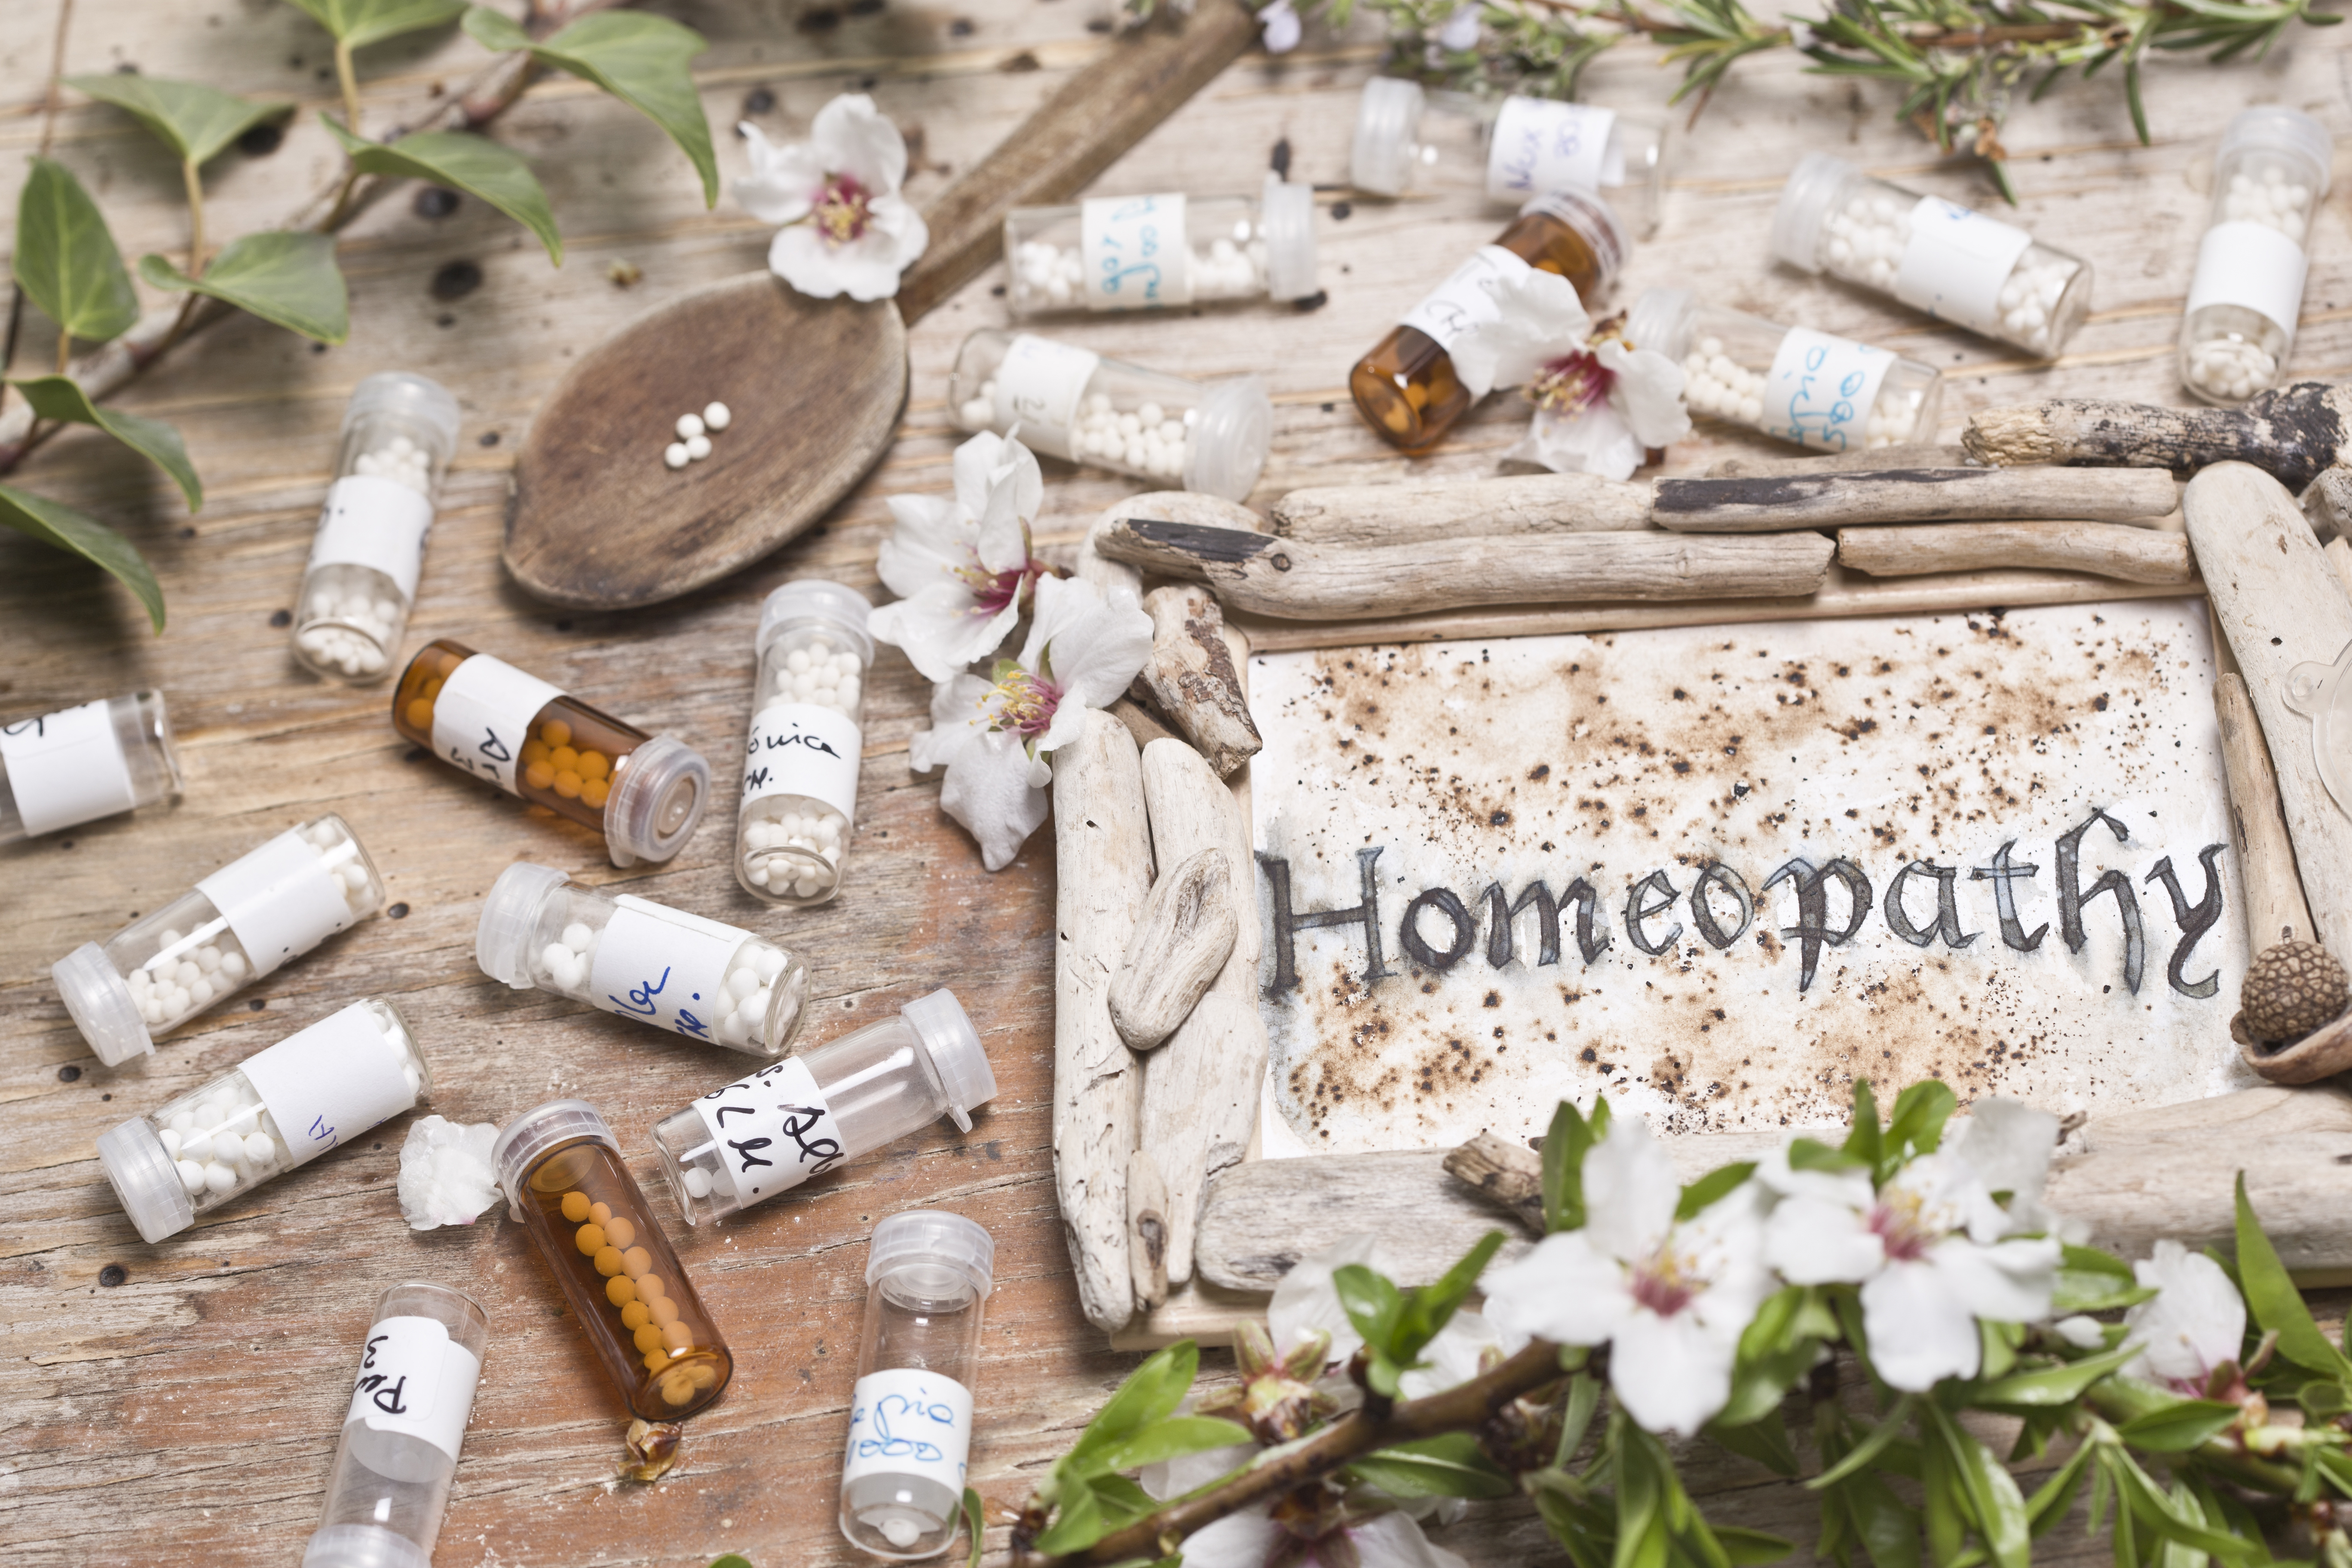 Homeopathy Cold & Flu Remedies